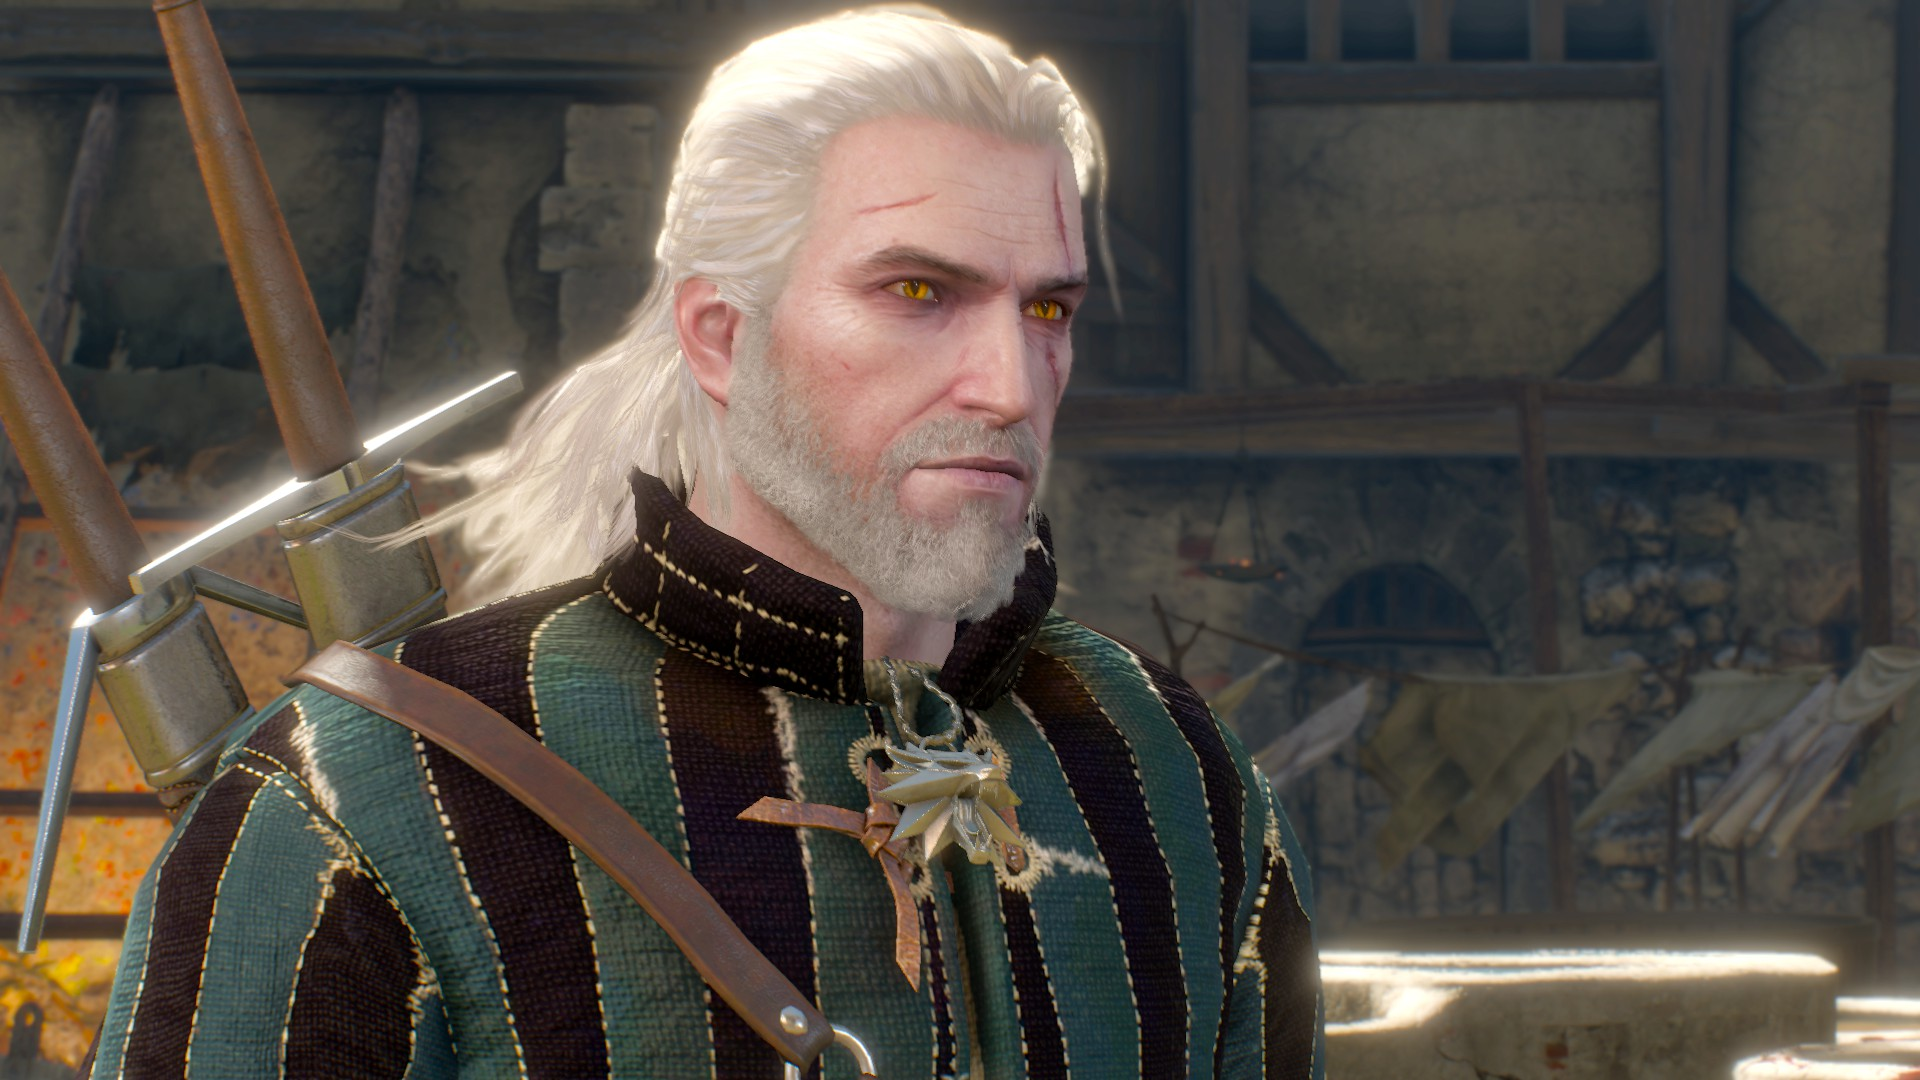 The Witcher 3 and Geralt of Rivia - finding humanity in the White Wolf